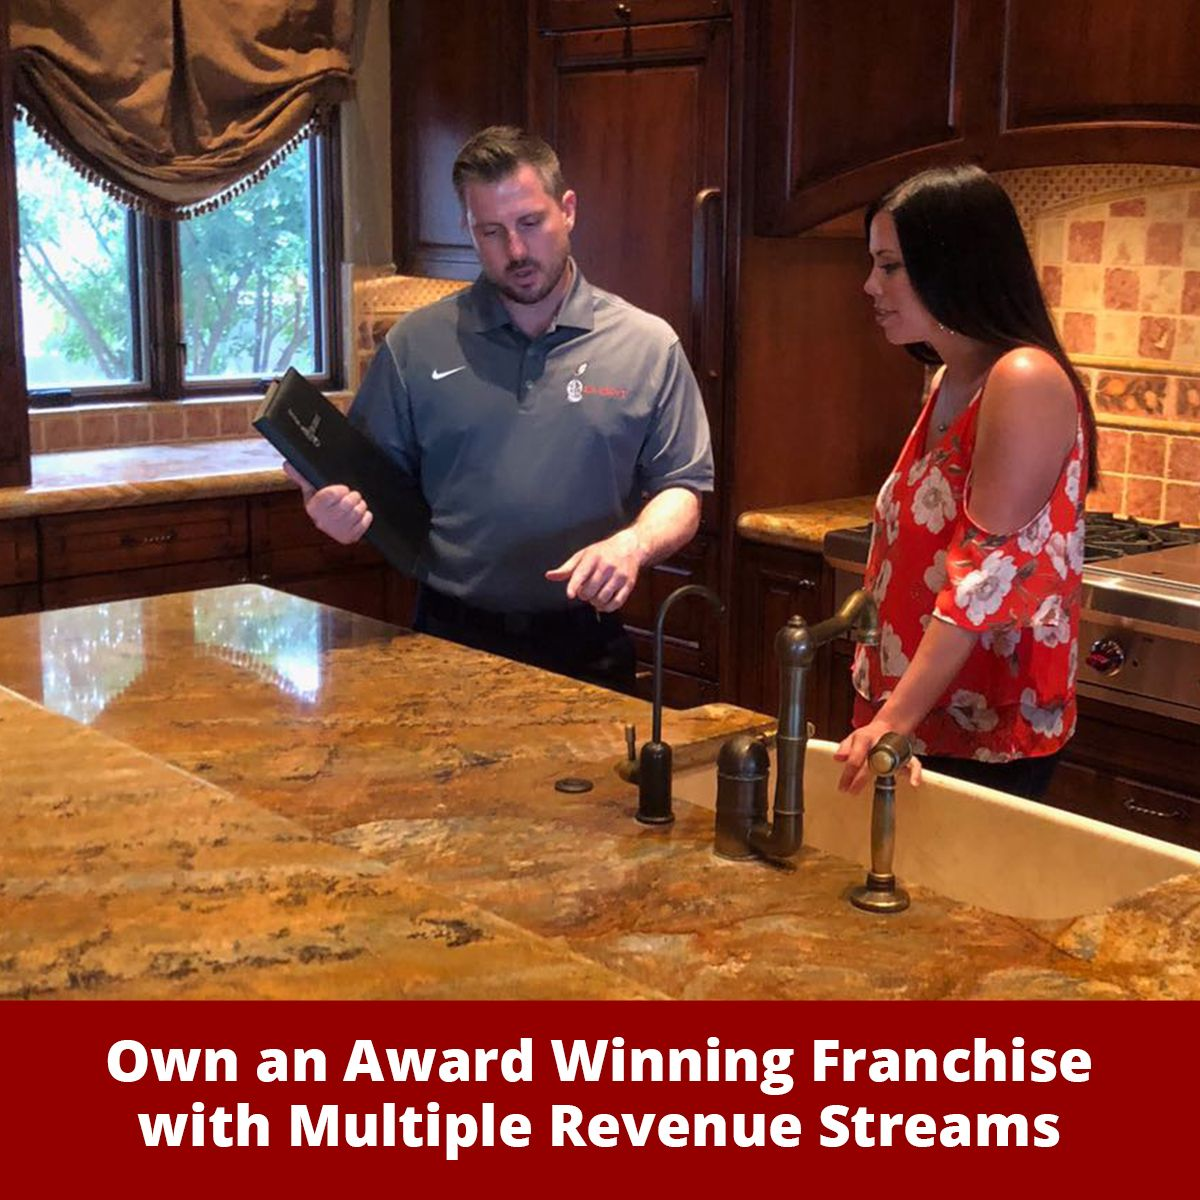 Own an Award Winning Service Franchise with Multiple Revenue Streams